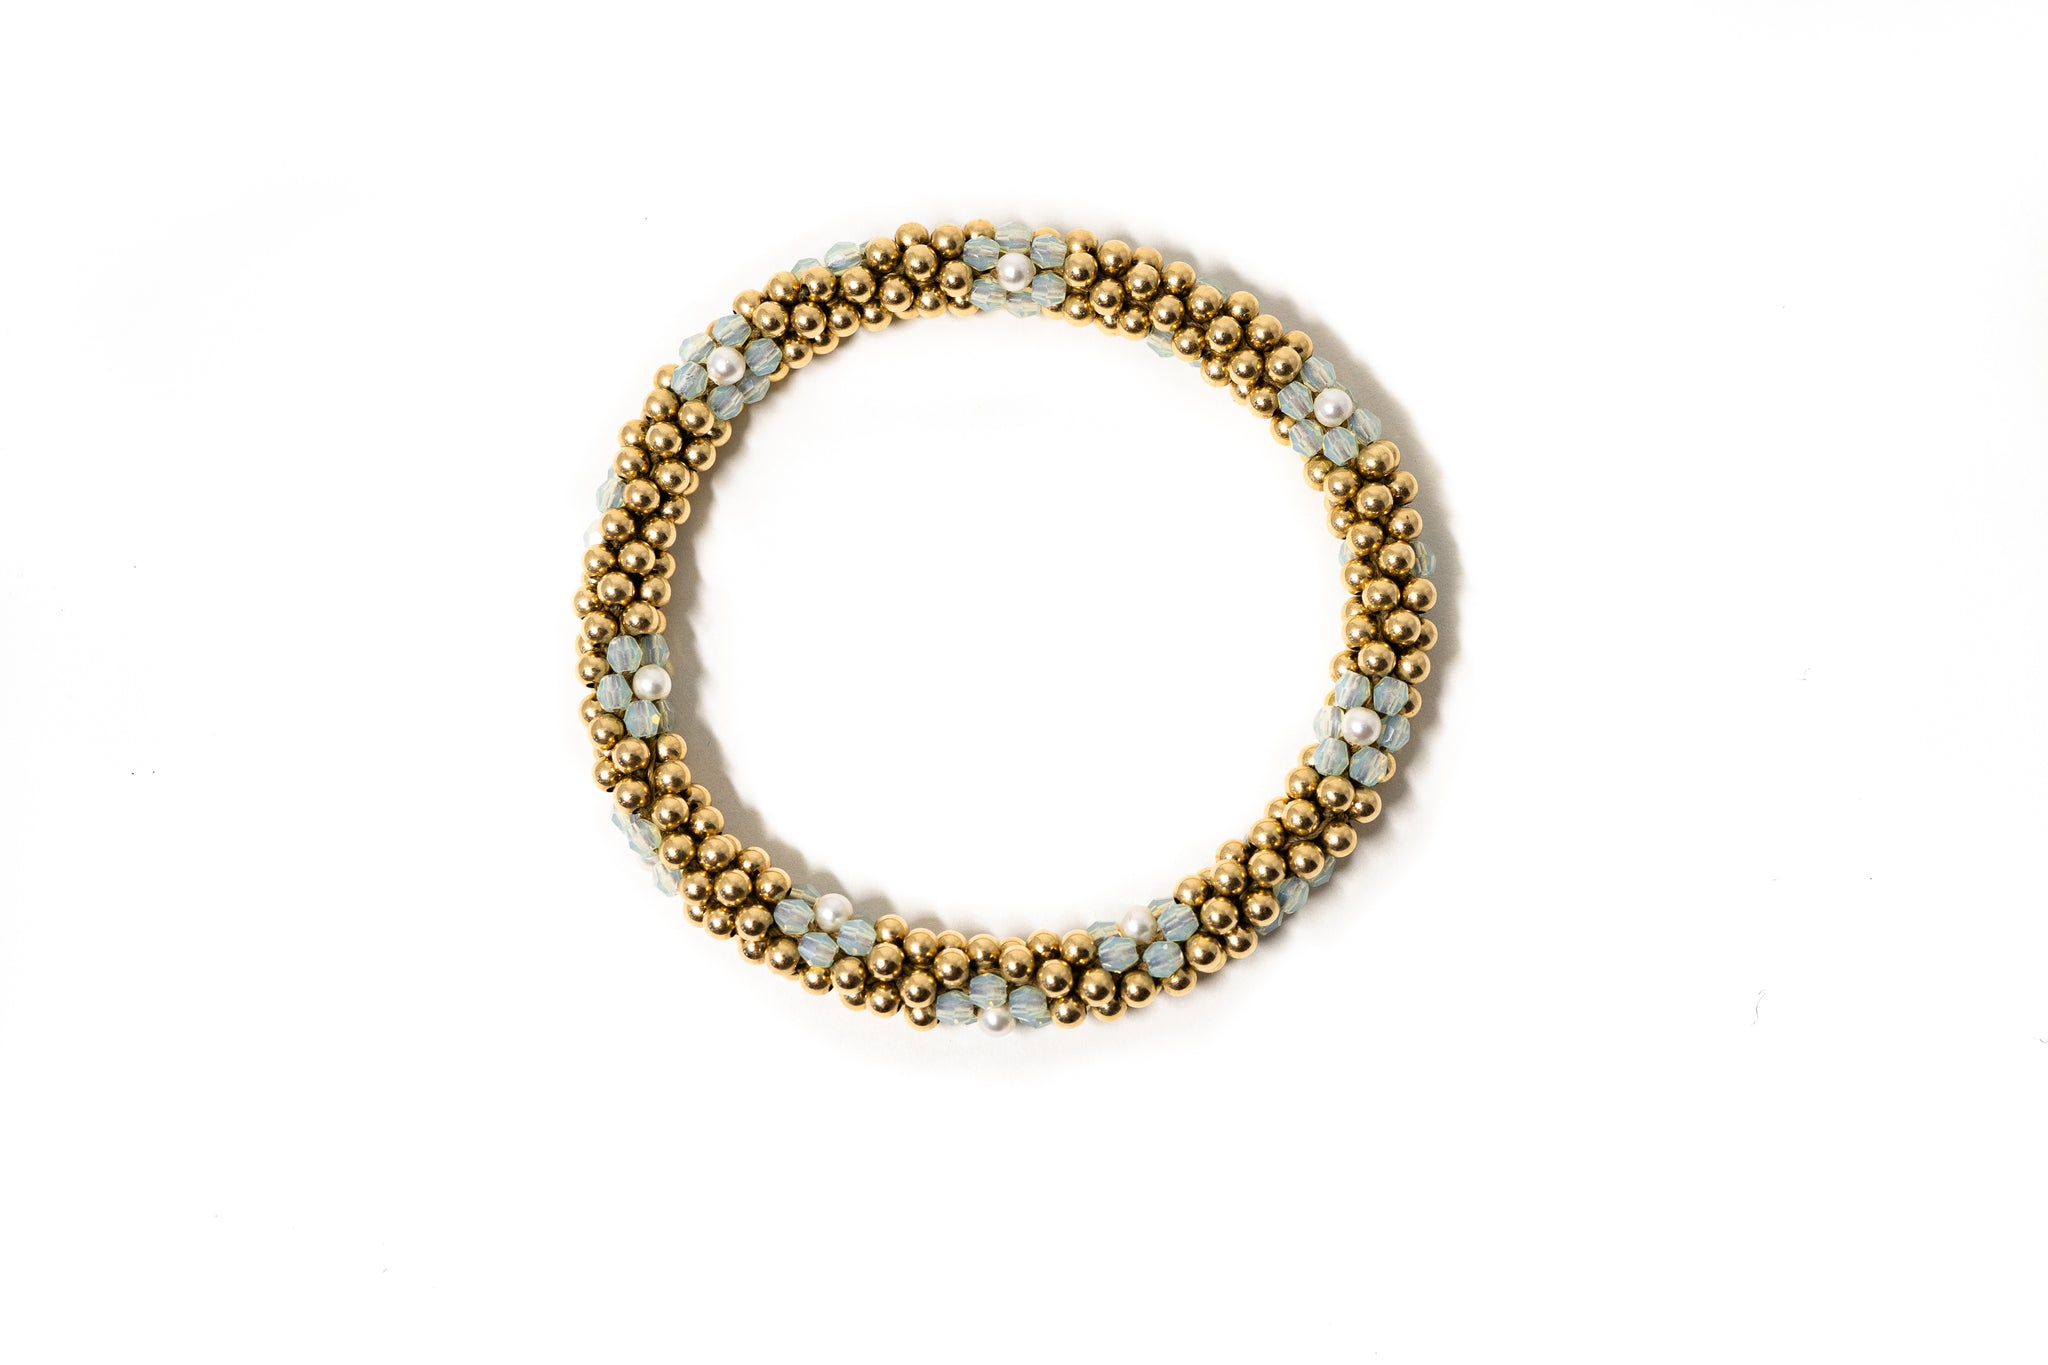 3mm Cluster Bracelets, Gold and Silver Floret Design (Click to View All)